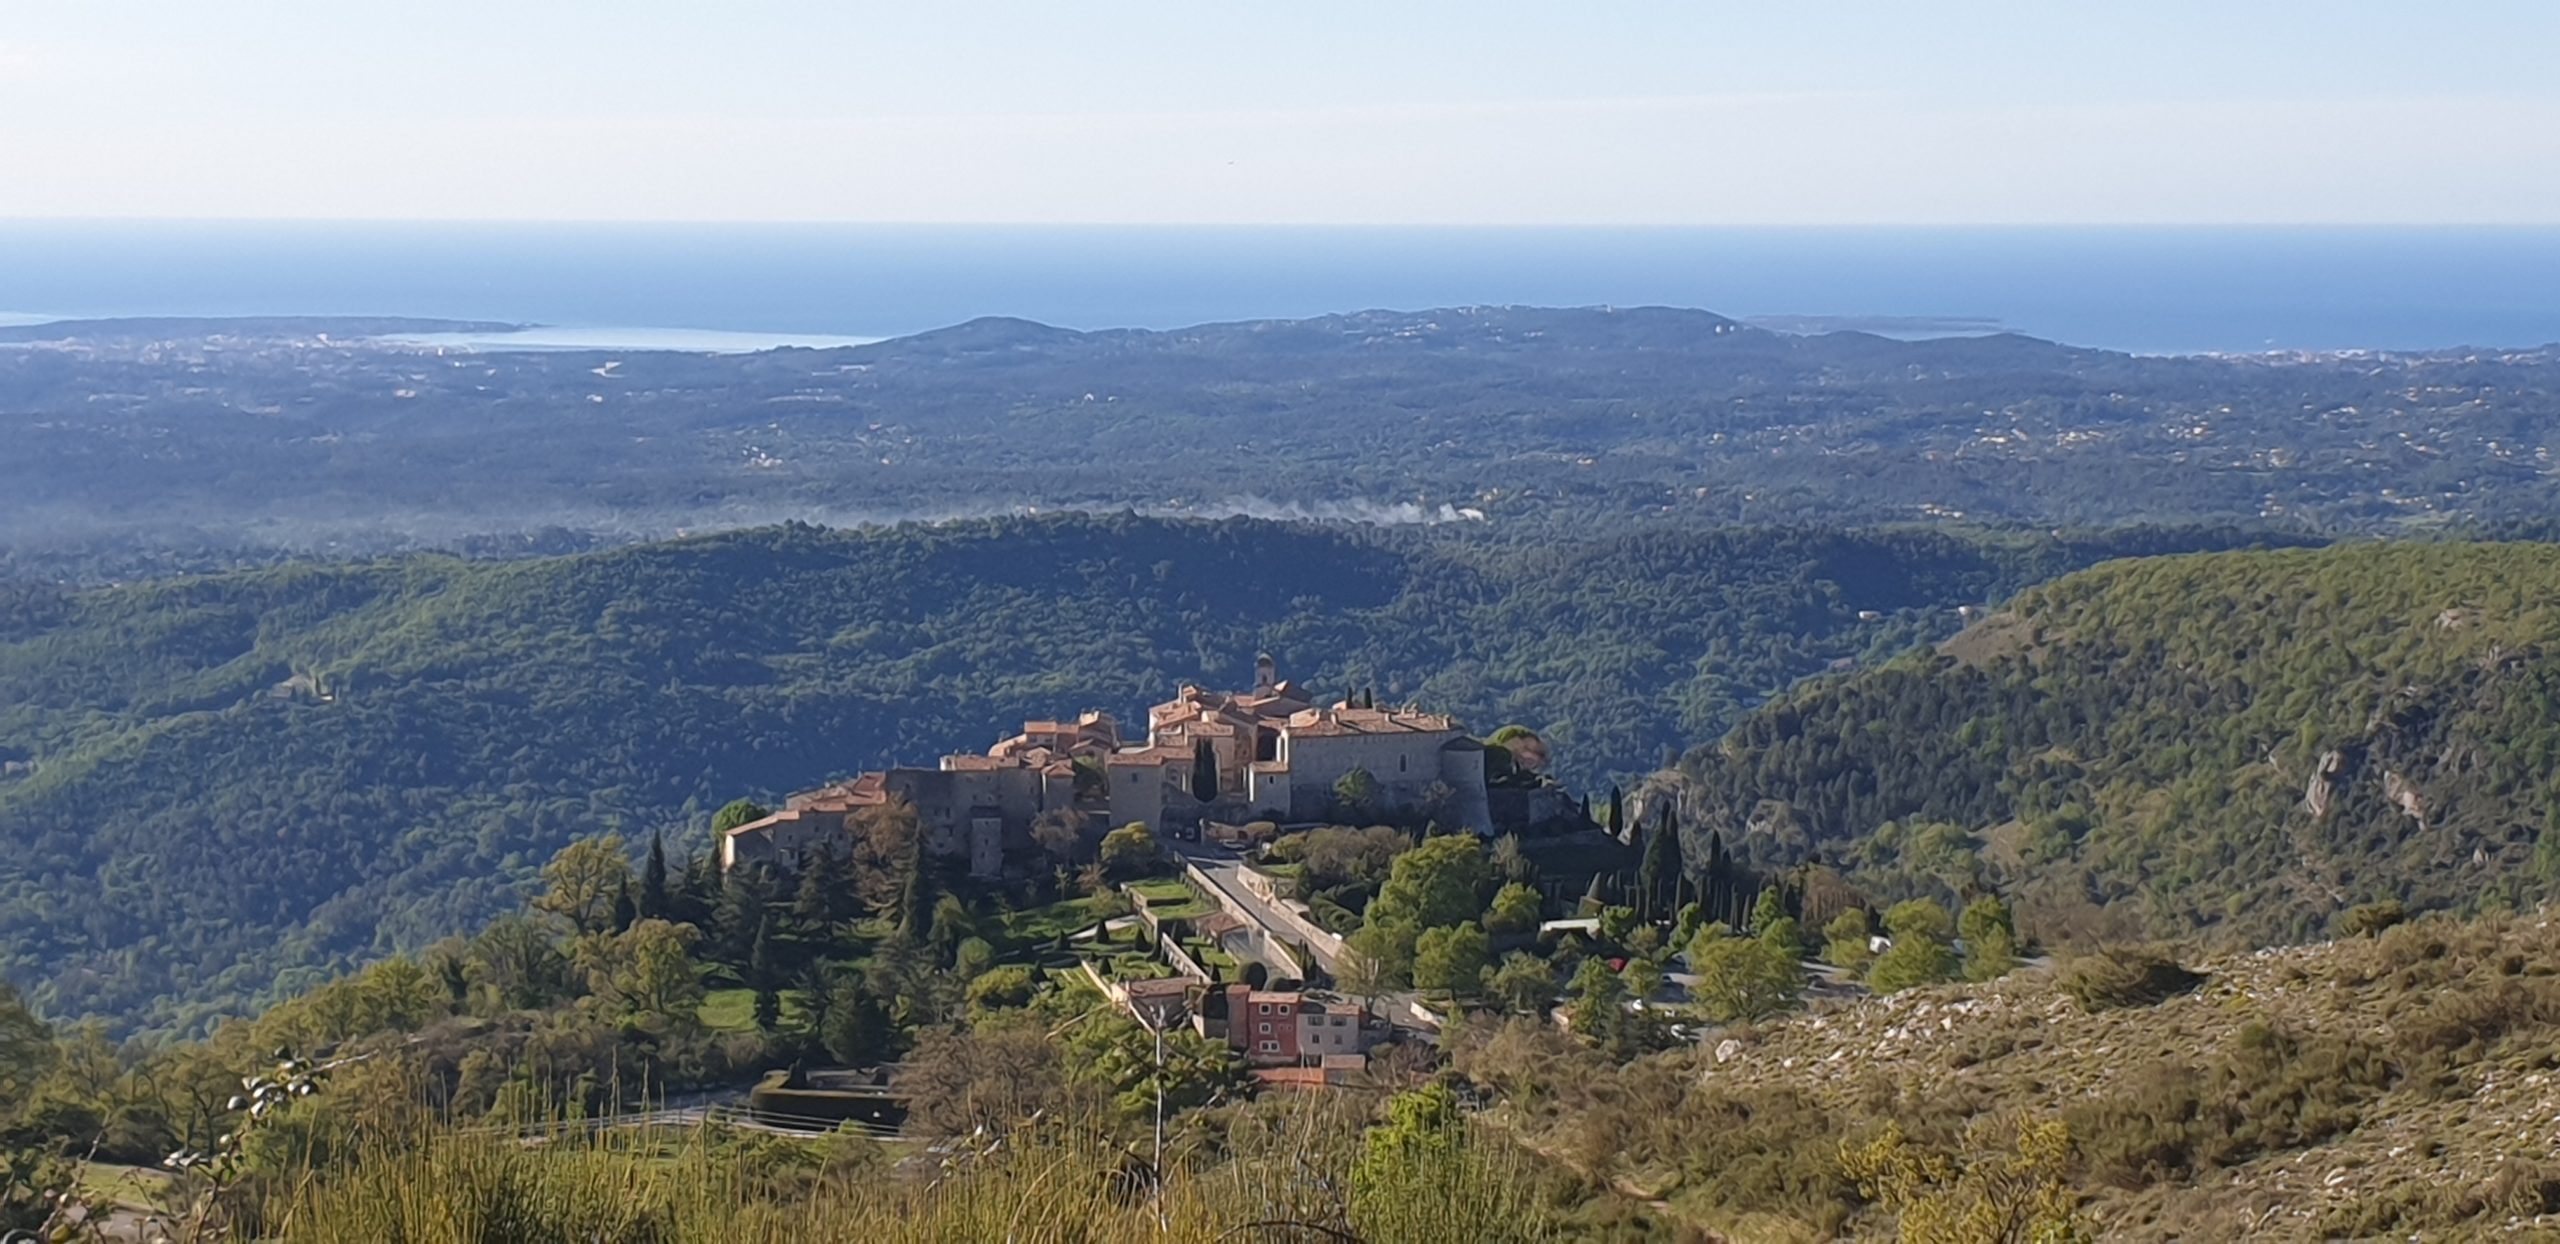 Grasse, Prealps and sheeps [EN]